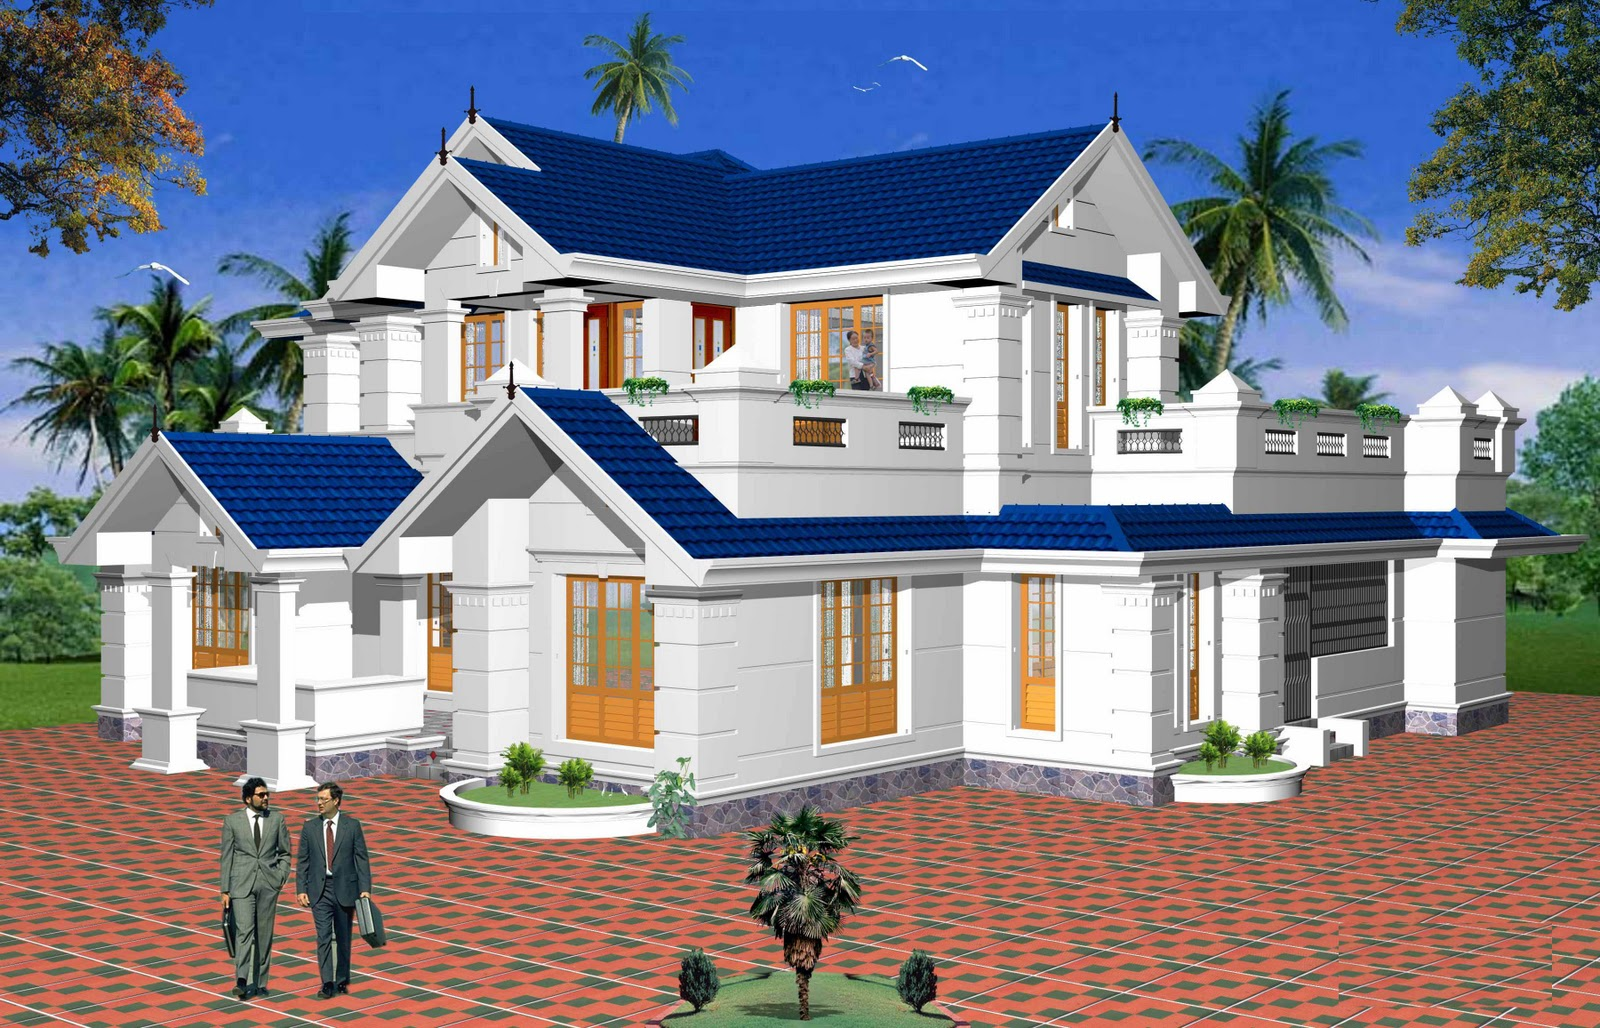 New home designs latest beautiful latest modern home for Beautiful home designs